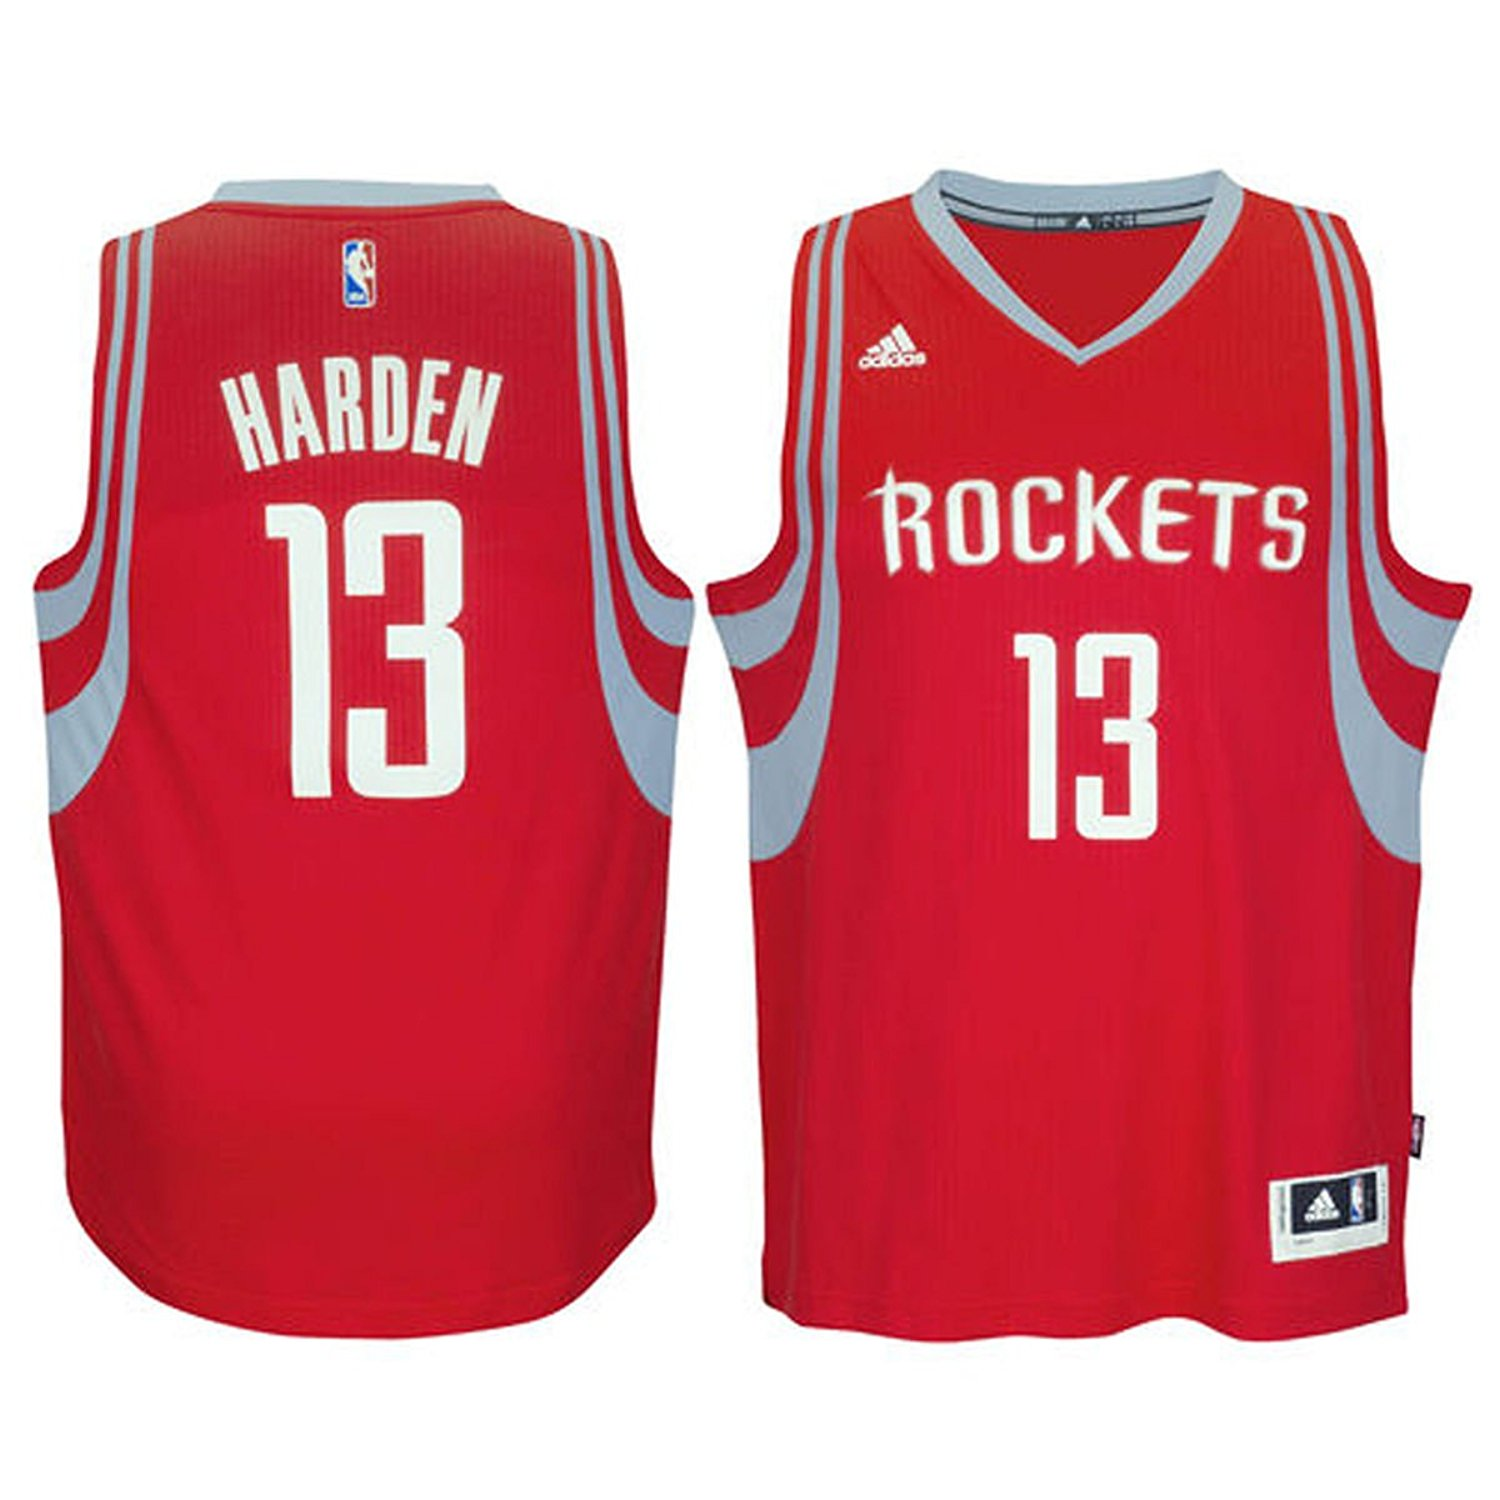 16f576d6e6a Buy James Harden Houston Rockets  13 NBA Red Youth Road Swingman Jersey in  Cheap Price on m.alibaba.com